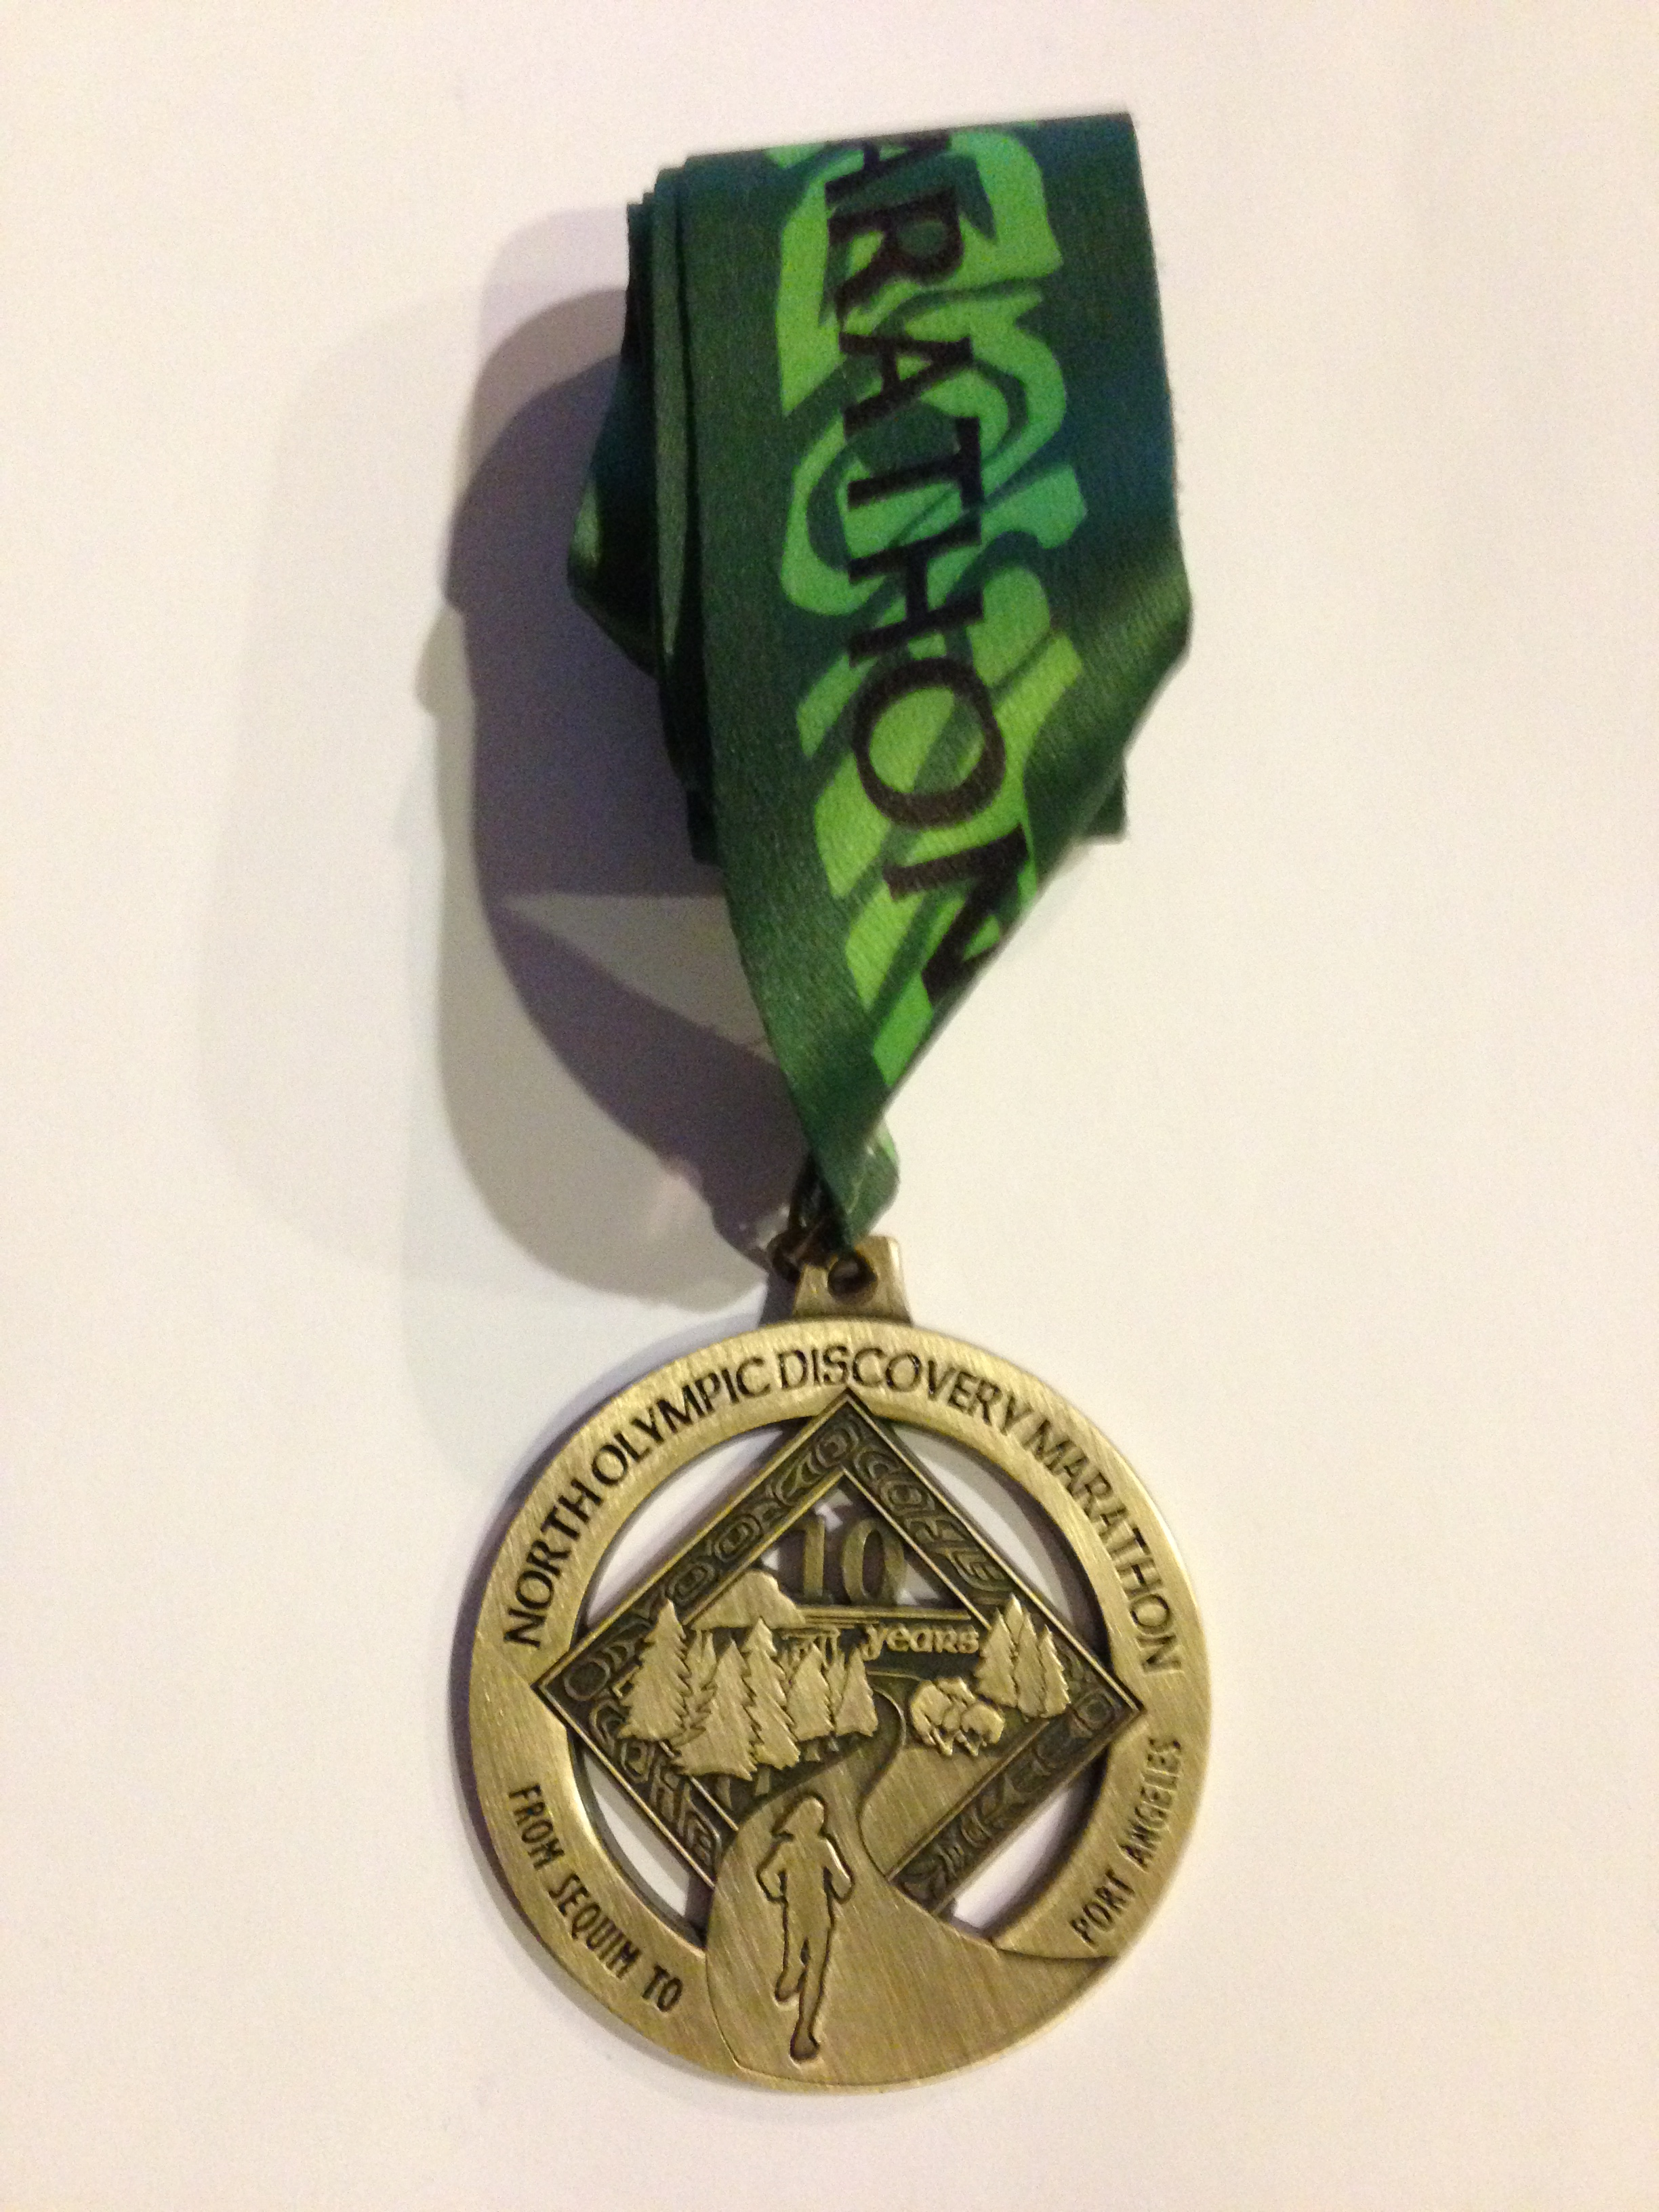 NORTH OLYMPIC DISCOVERY MARATHON MEDAL